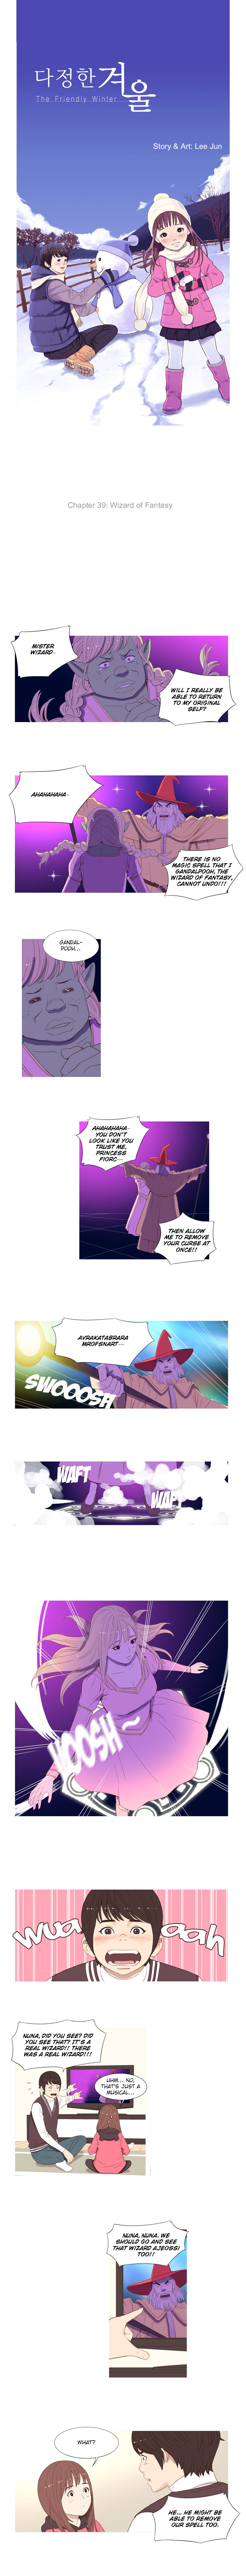 The Friendly Winter 39 Page 2